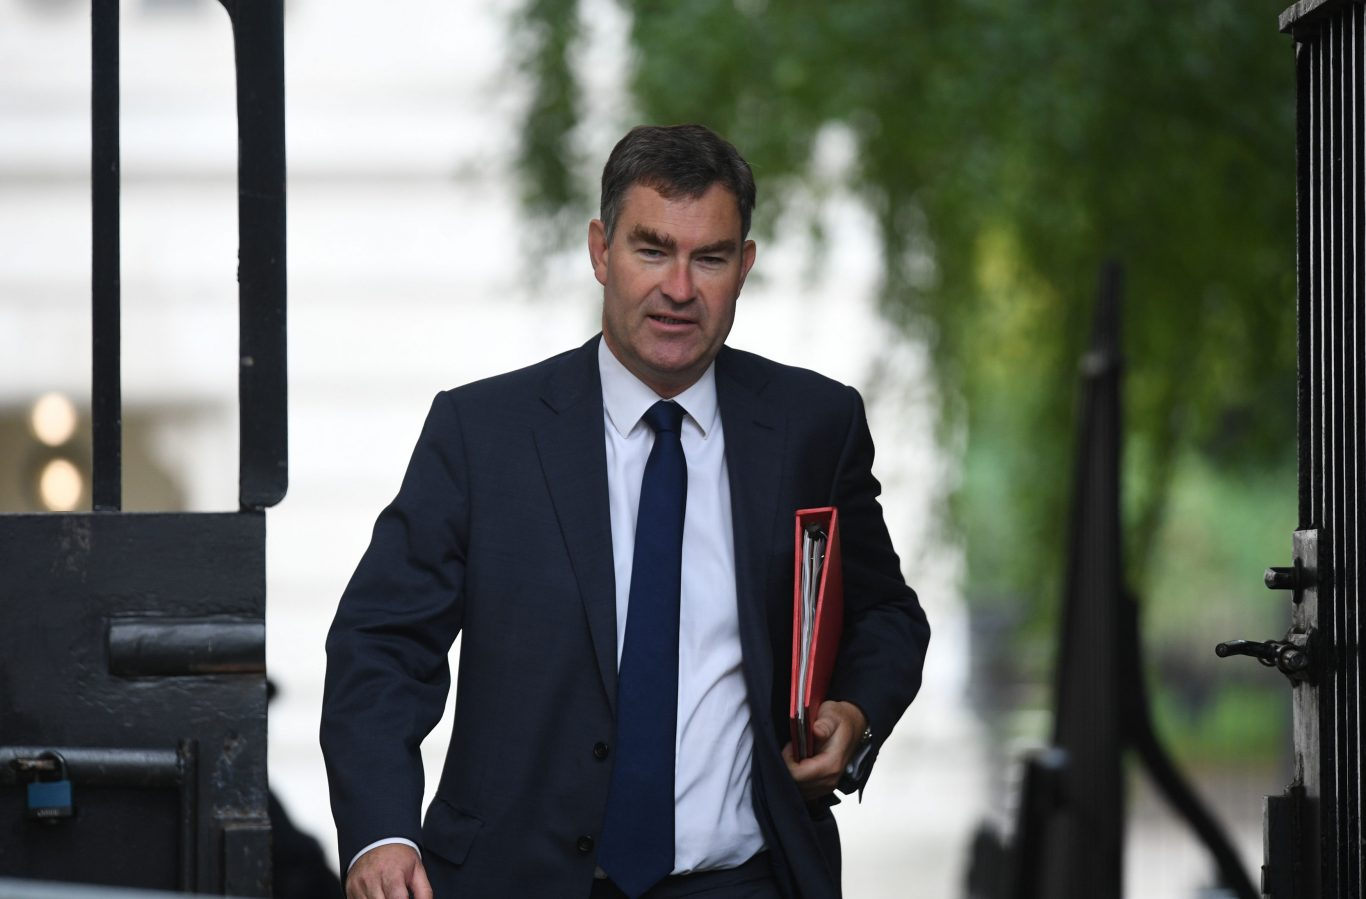 Work and Pensions Secretary David Gauke reiterated plans to push on with major expansion of Universal Credit